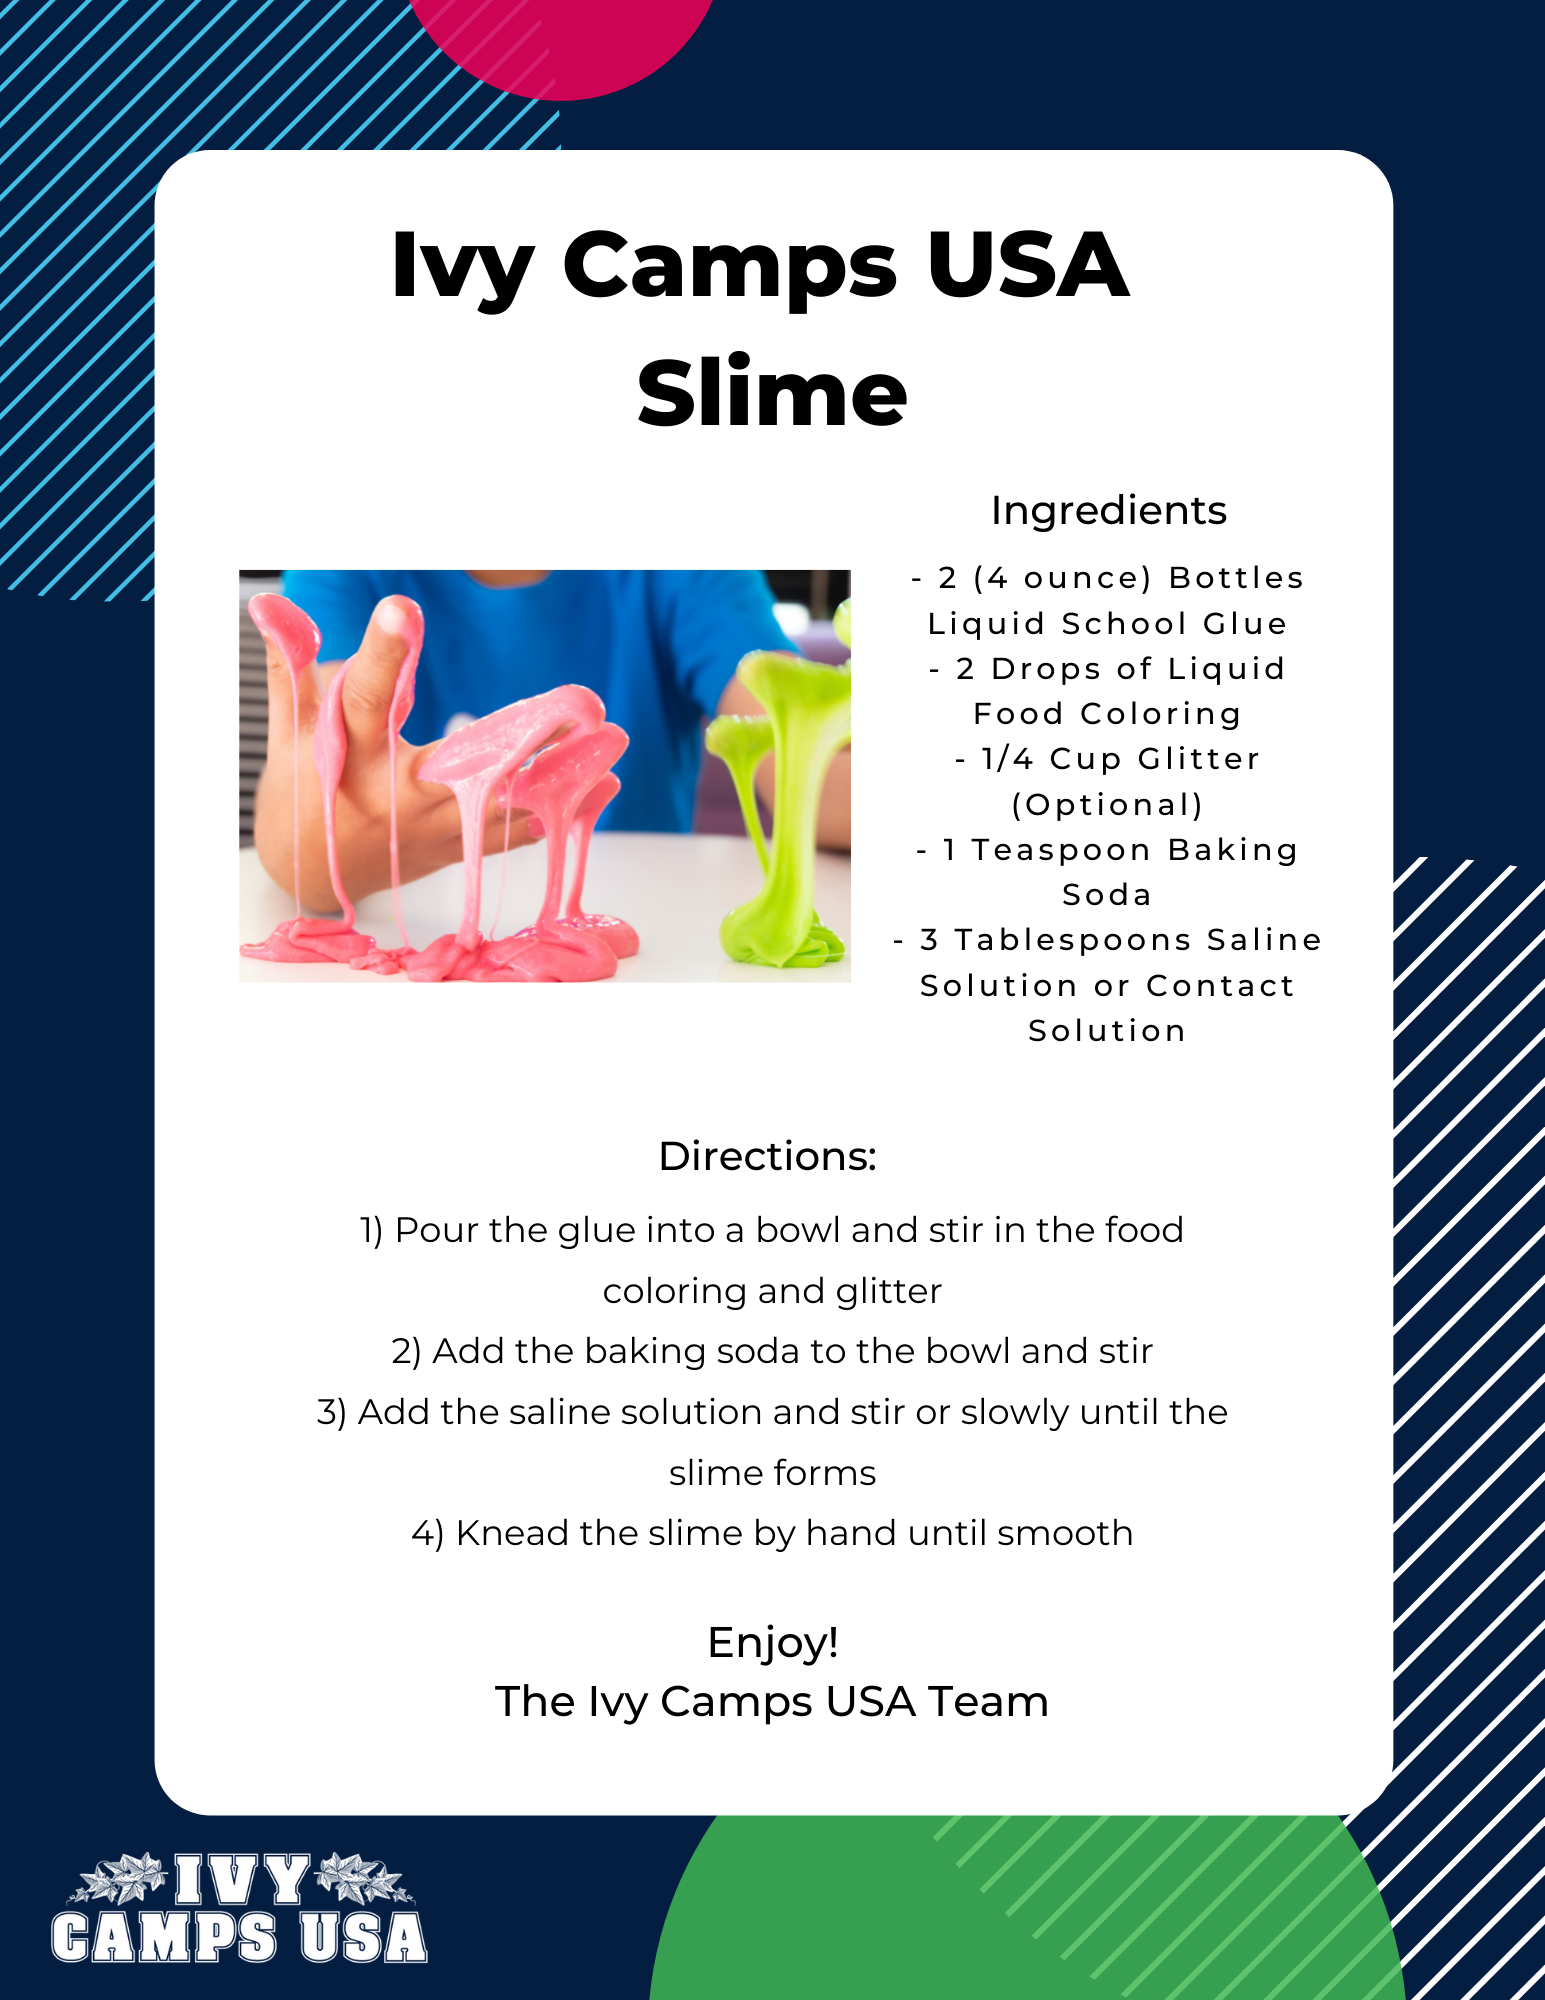 Ivy Camps USA interactive STEAM activity for slime